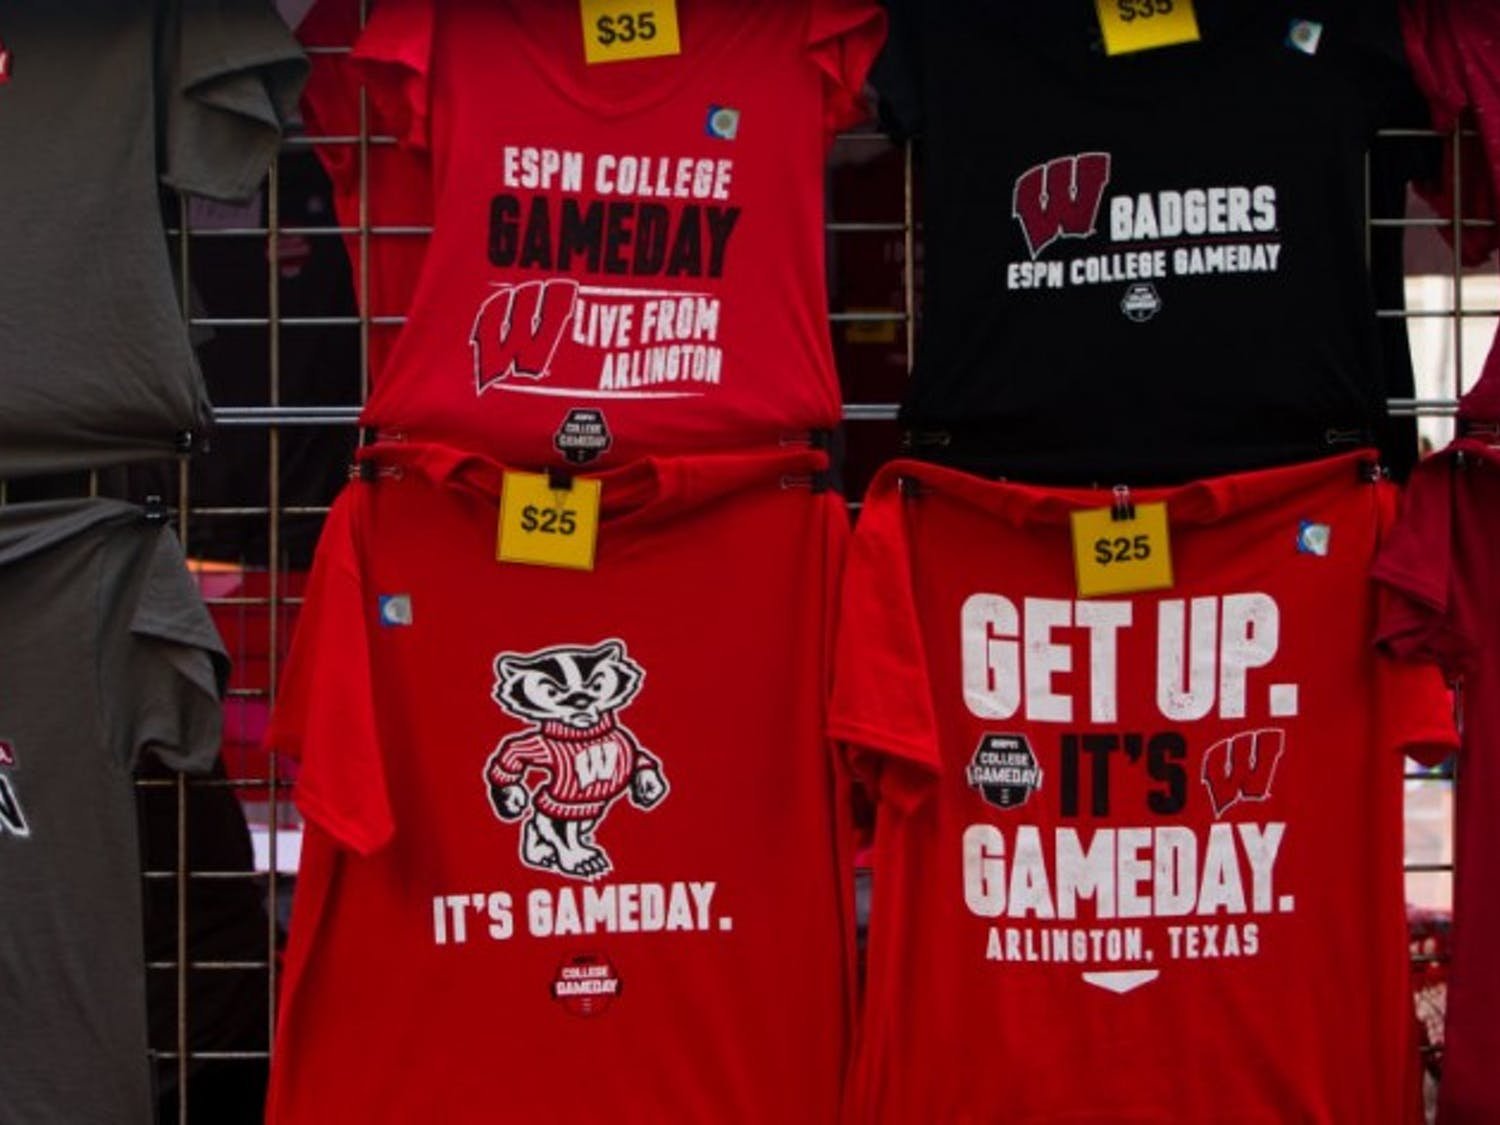 In advance of Wisconsin's season opener against Alabama in Arlington, Texas, ESPN's College GameDay football pregame show took place Saturday, Sept. 5 at Sundance Square in Fort Worth, Texas.